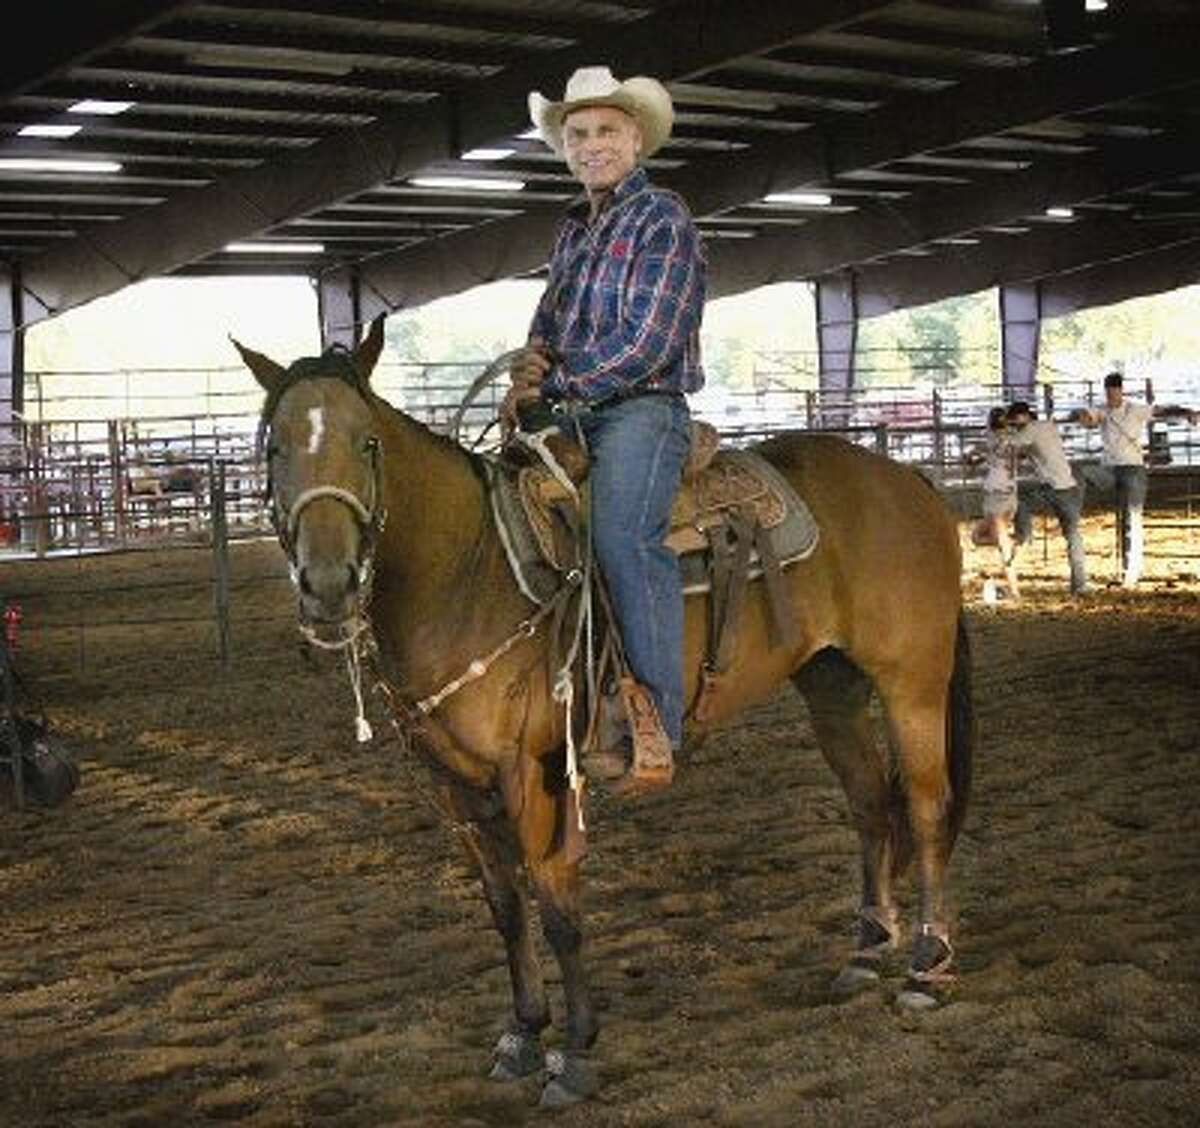 Randy Weaver, lead pastor at Lone Star Cowboy Church, and his 13-year-old sorrel gelding Humo Command take a breather from tie-down roping at the church's arena Tuesday.